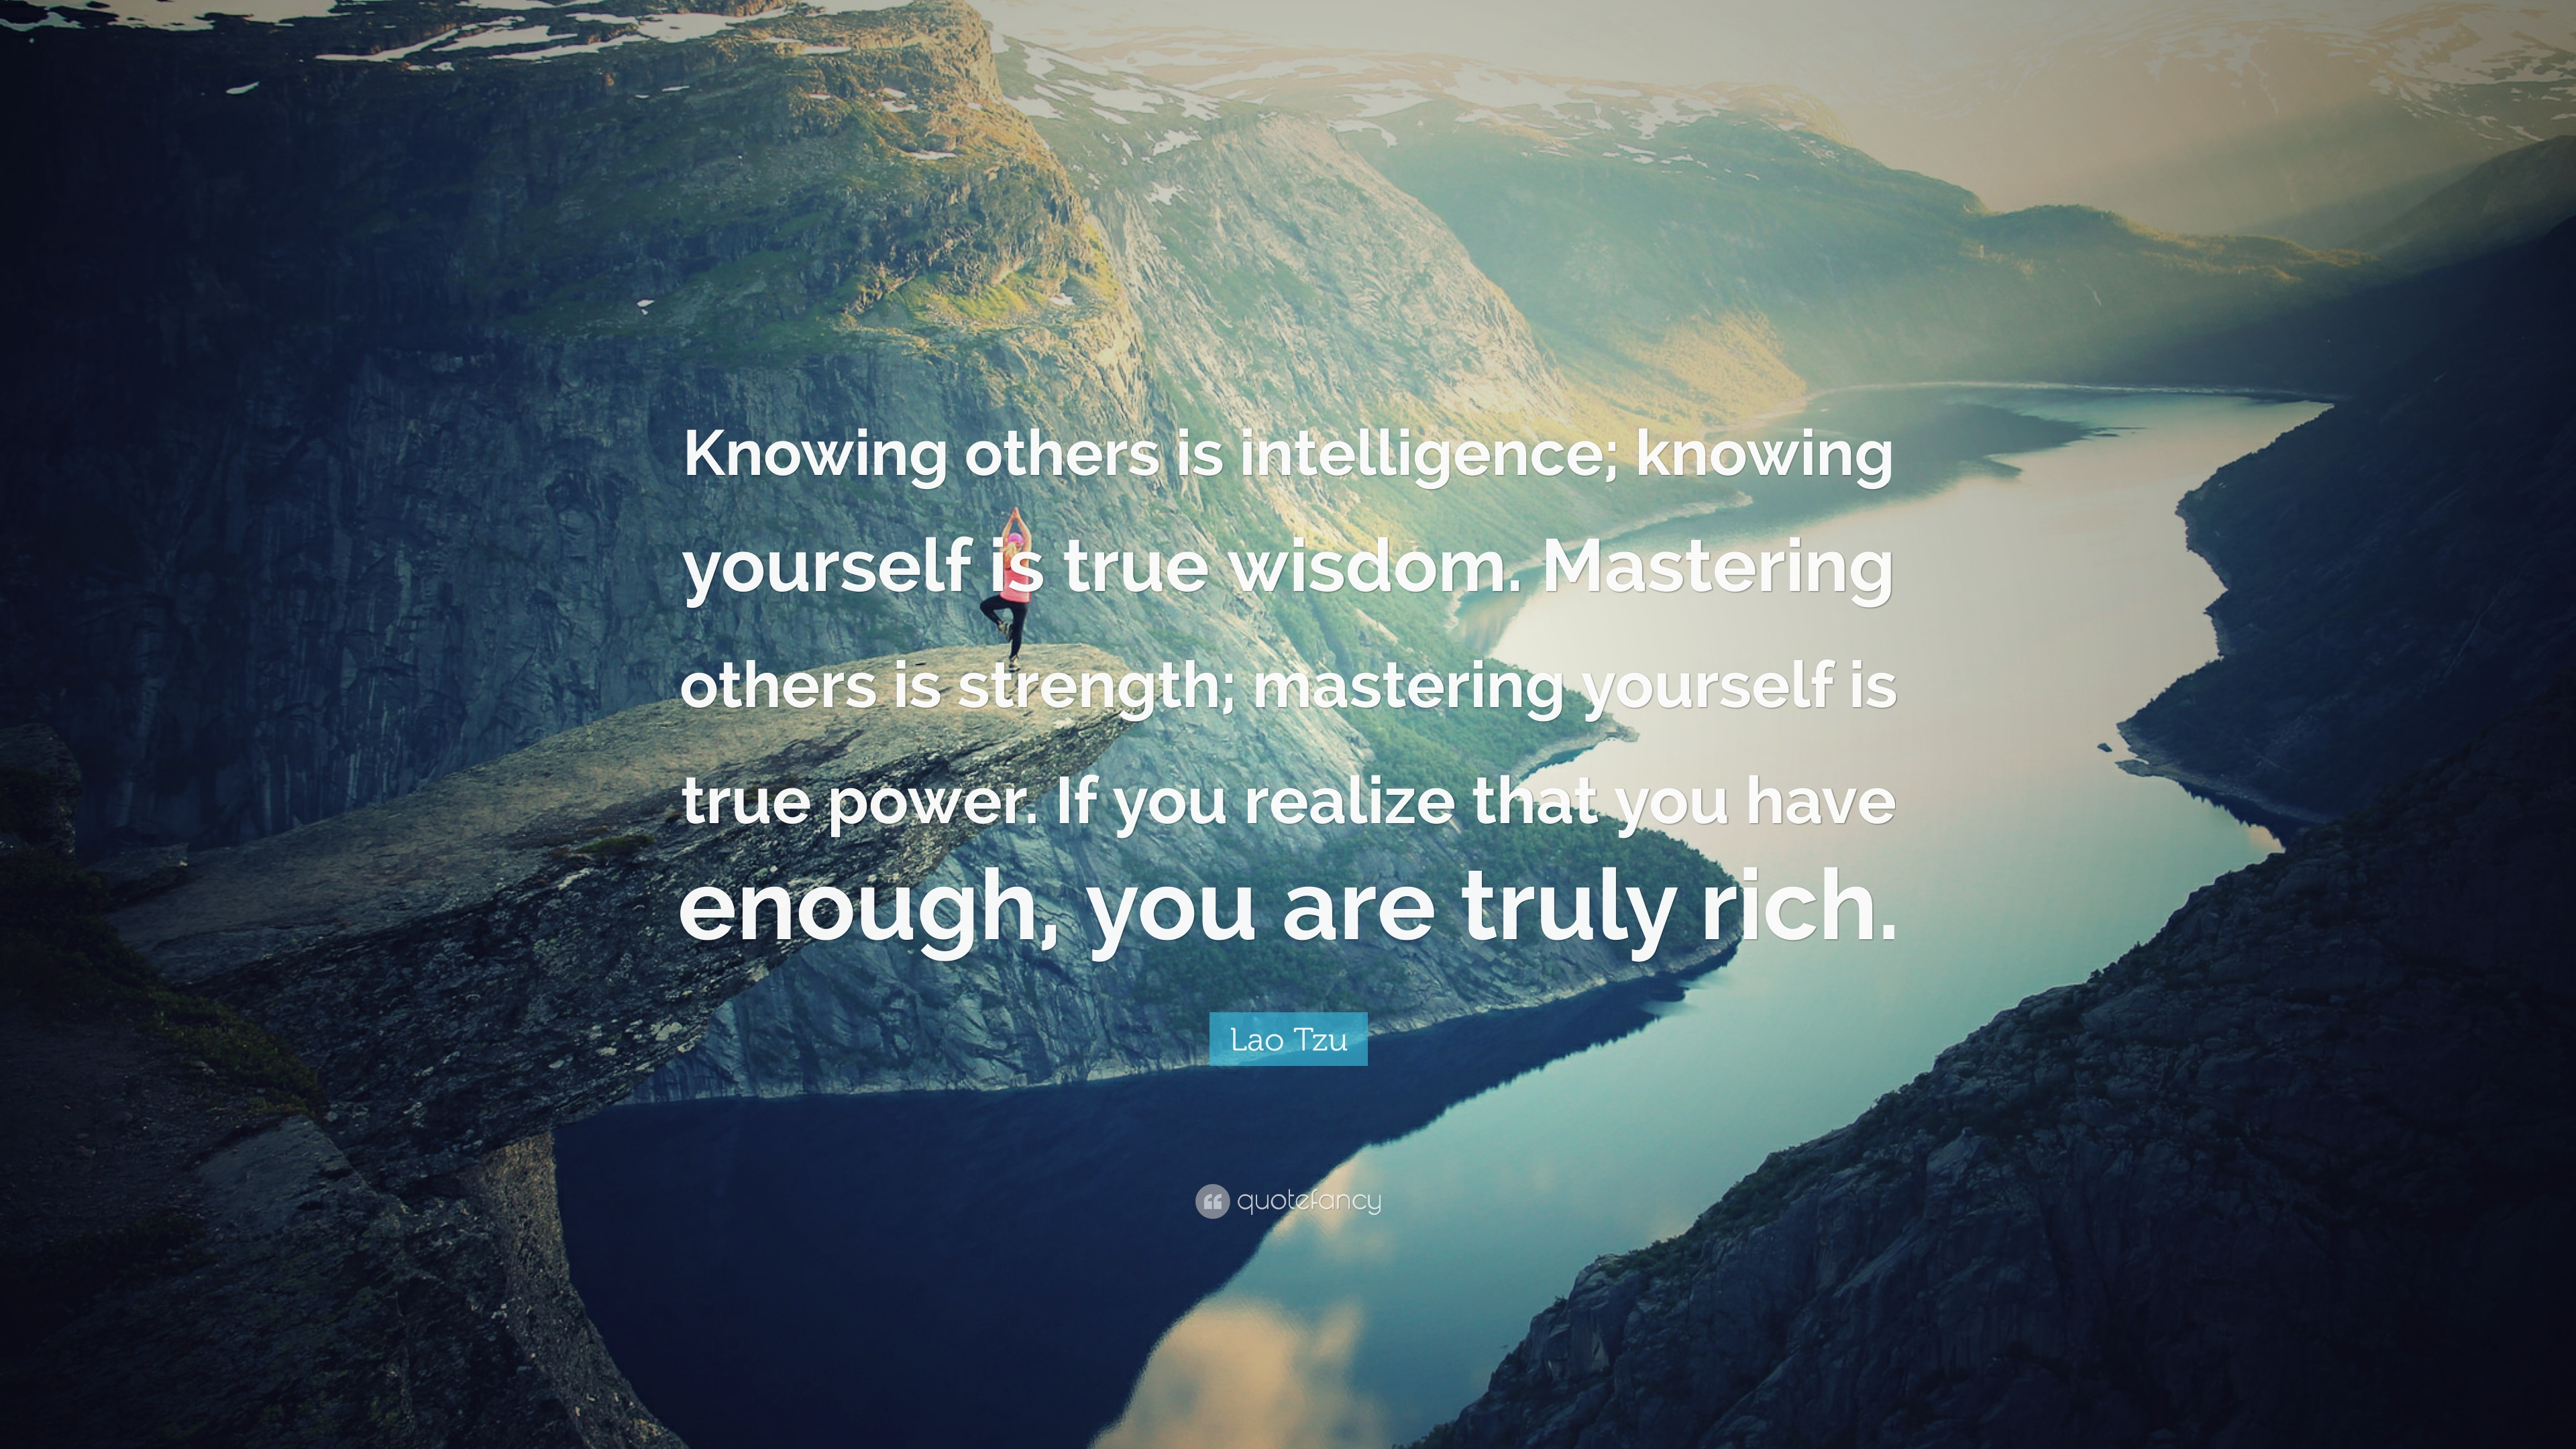 lao tzu quote knowing others is intelligence knowing yourself is